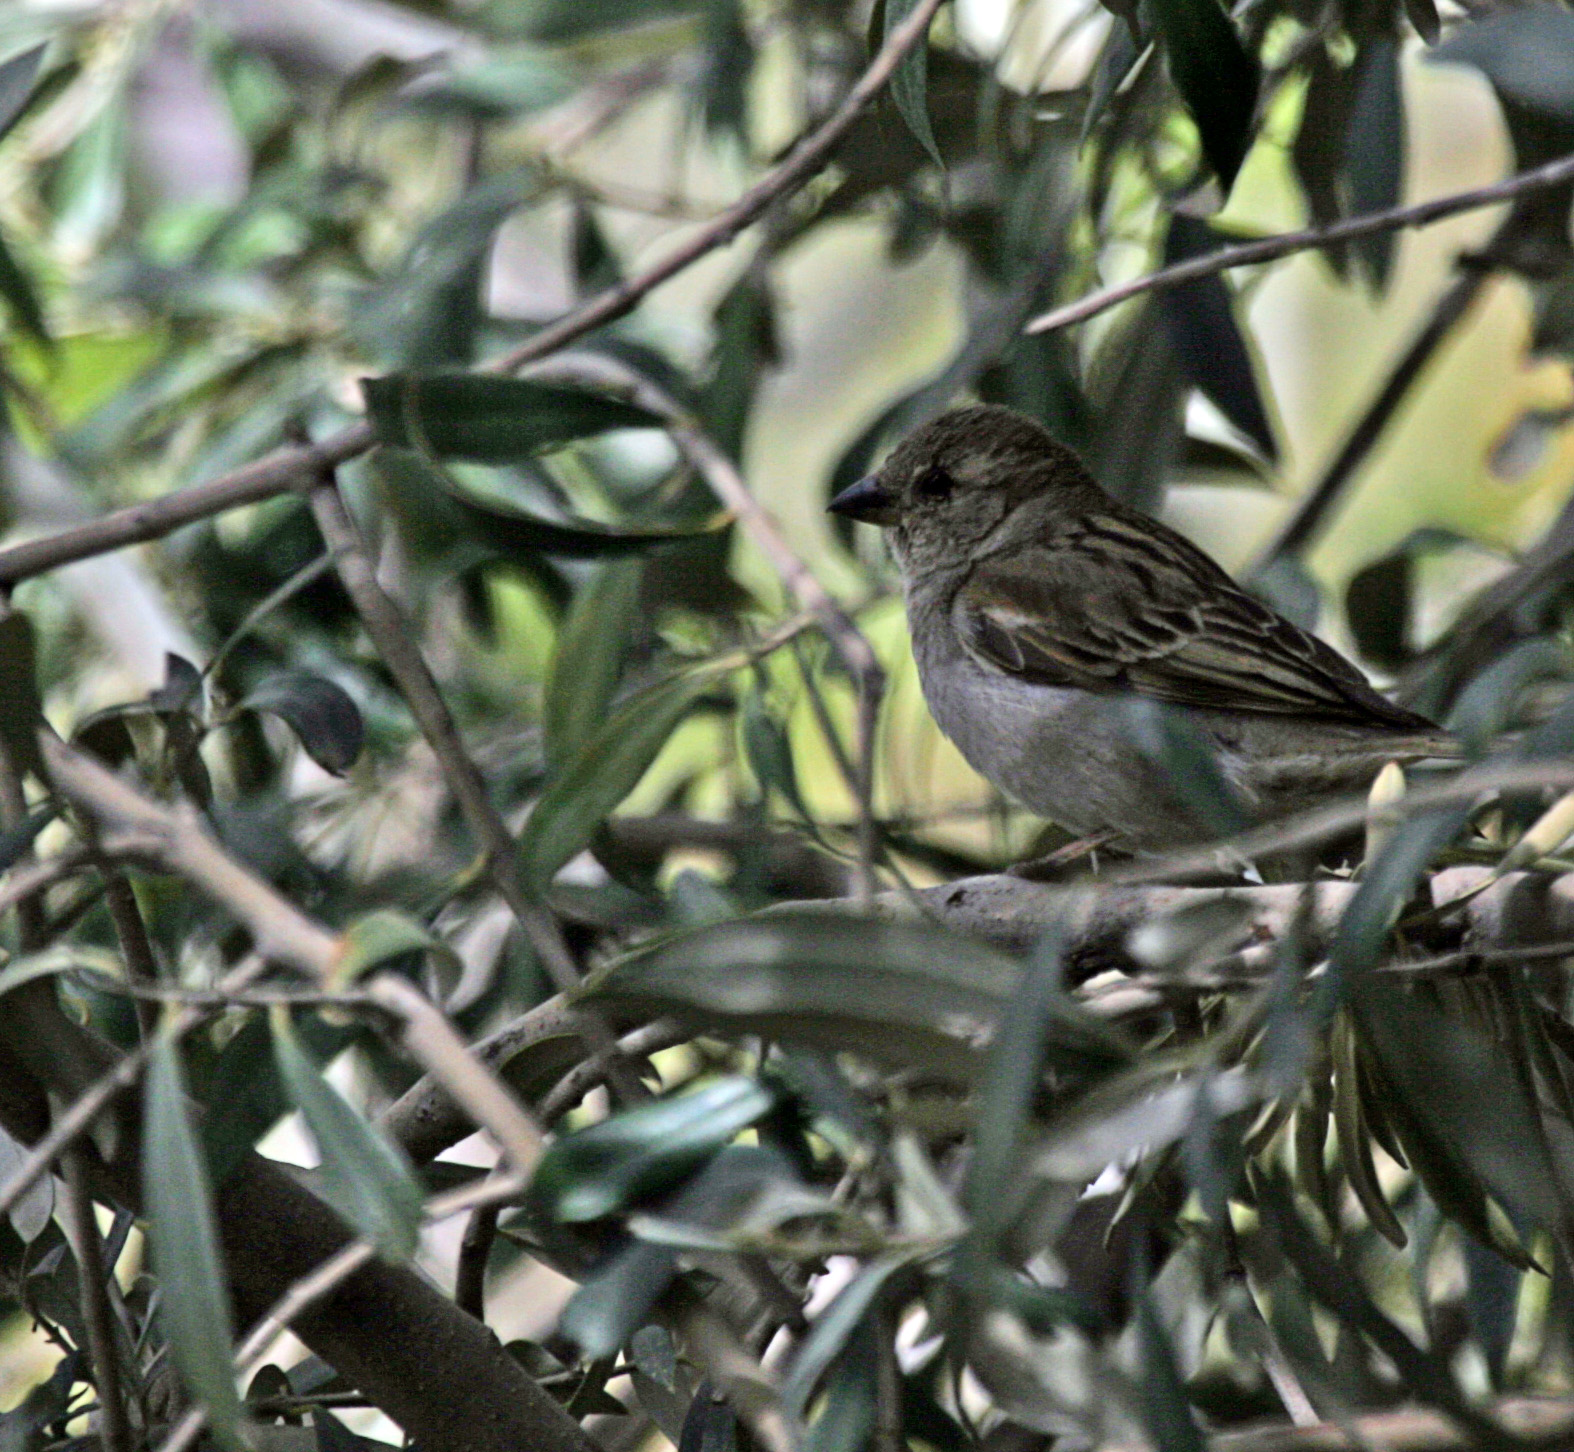 Sparrows Wot I\'ve Seen! - All creatures.... - Wildlife - The RSPB ...